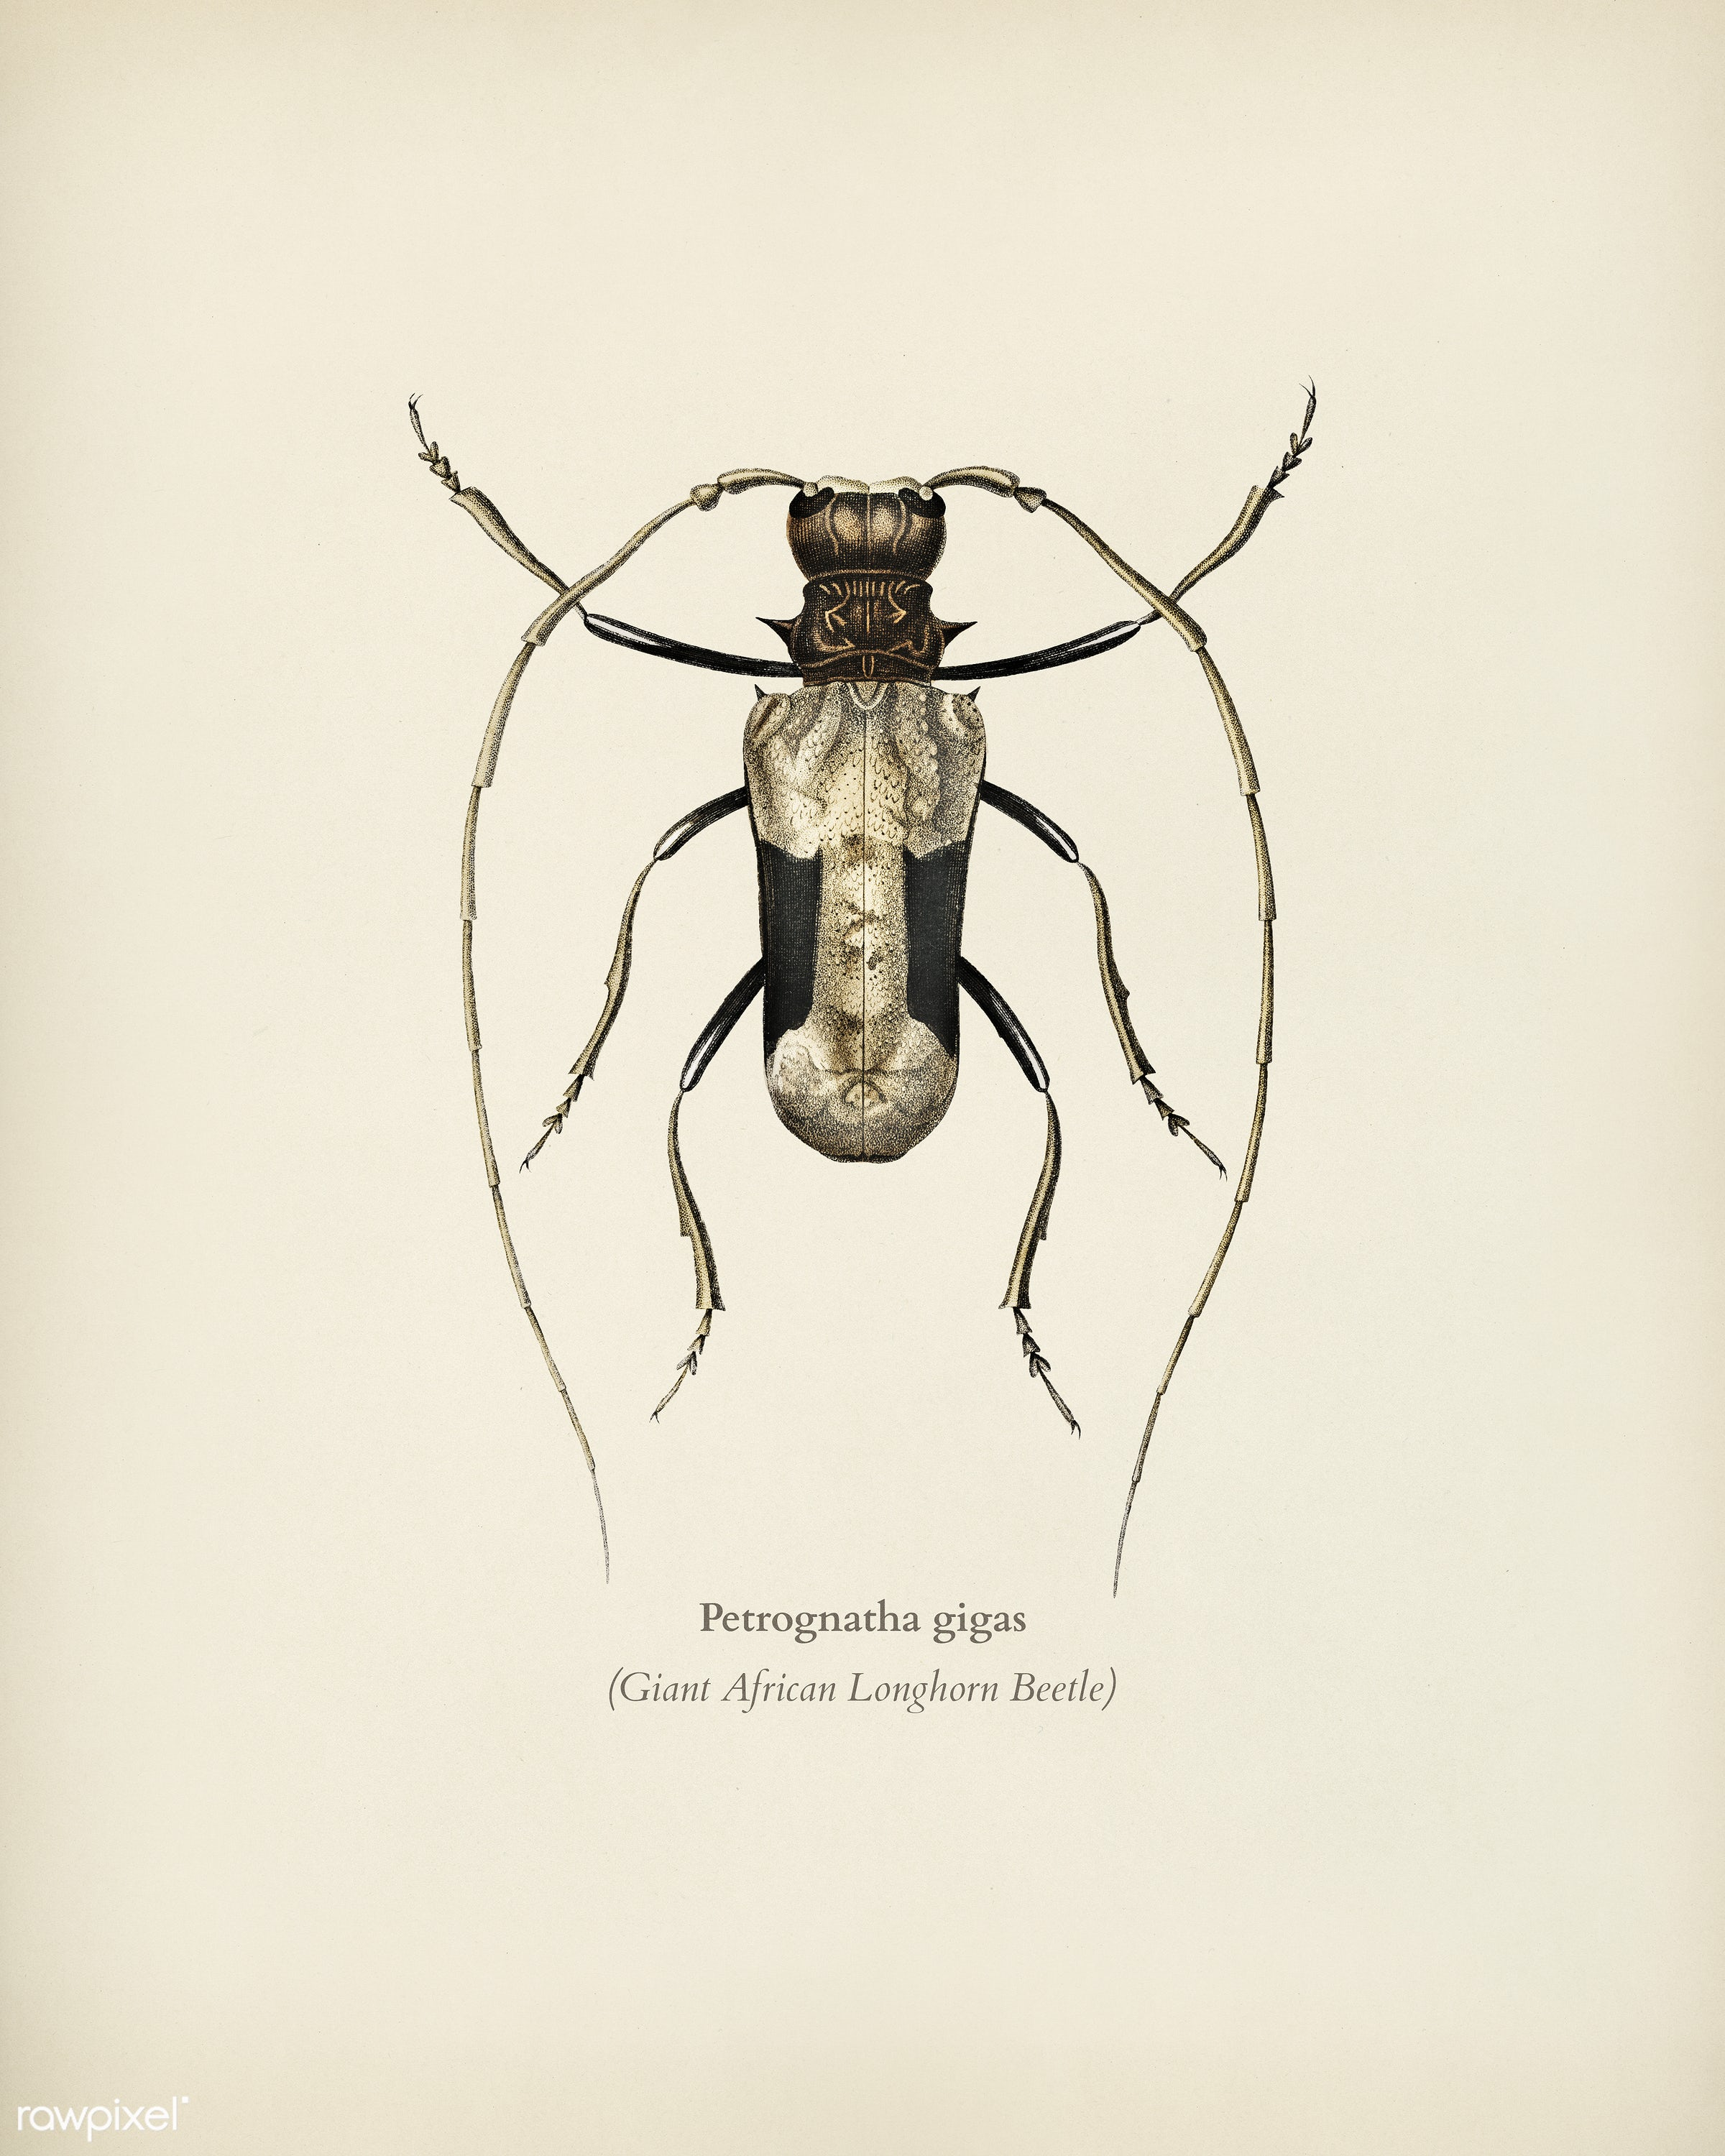 Giant African Longhorn Beetle (Petrognatha gigas) illustrated by Charles Dessalines D' Orbigny (1806-1876). Digitally...